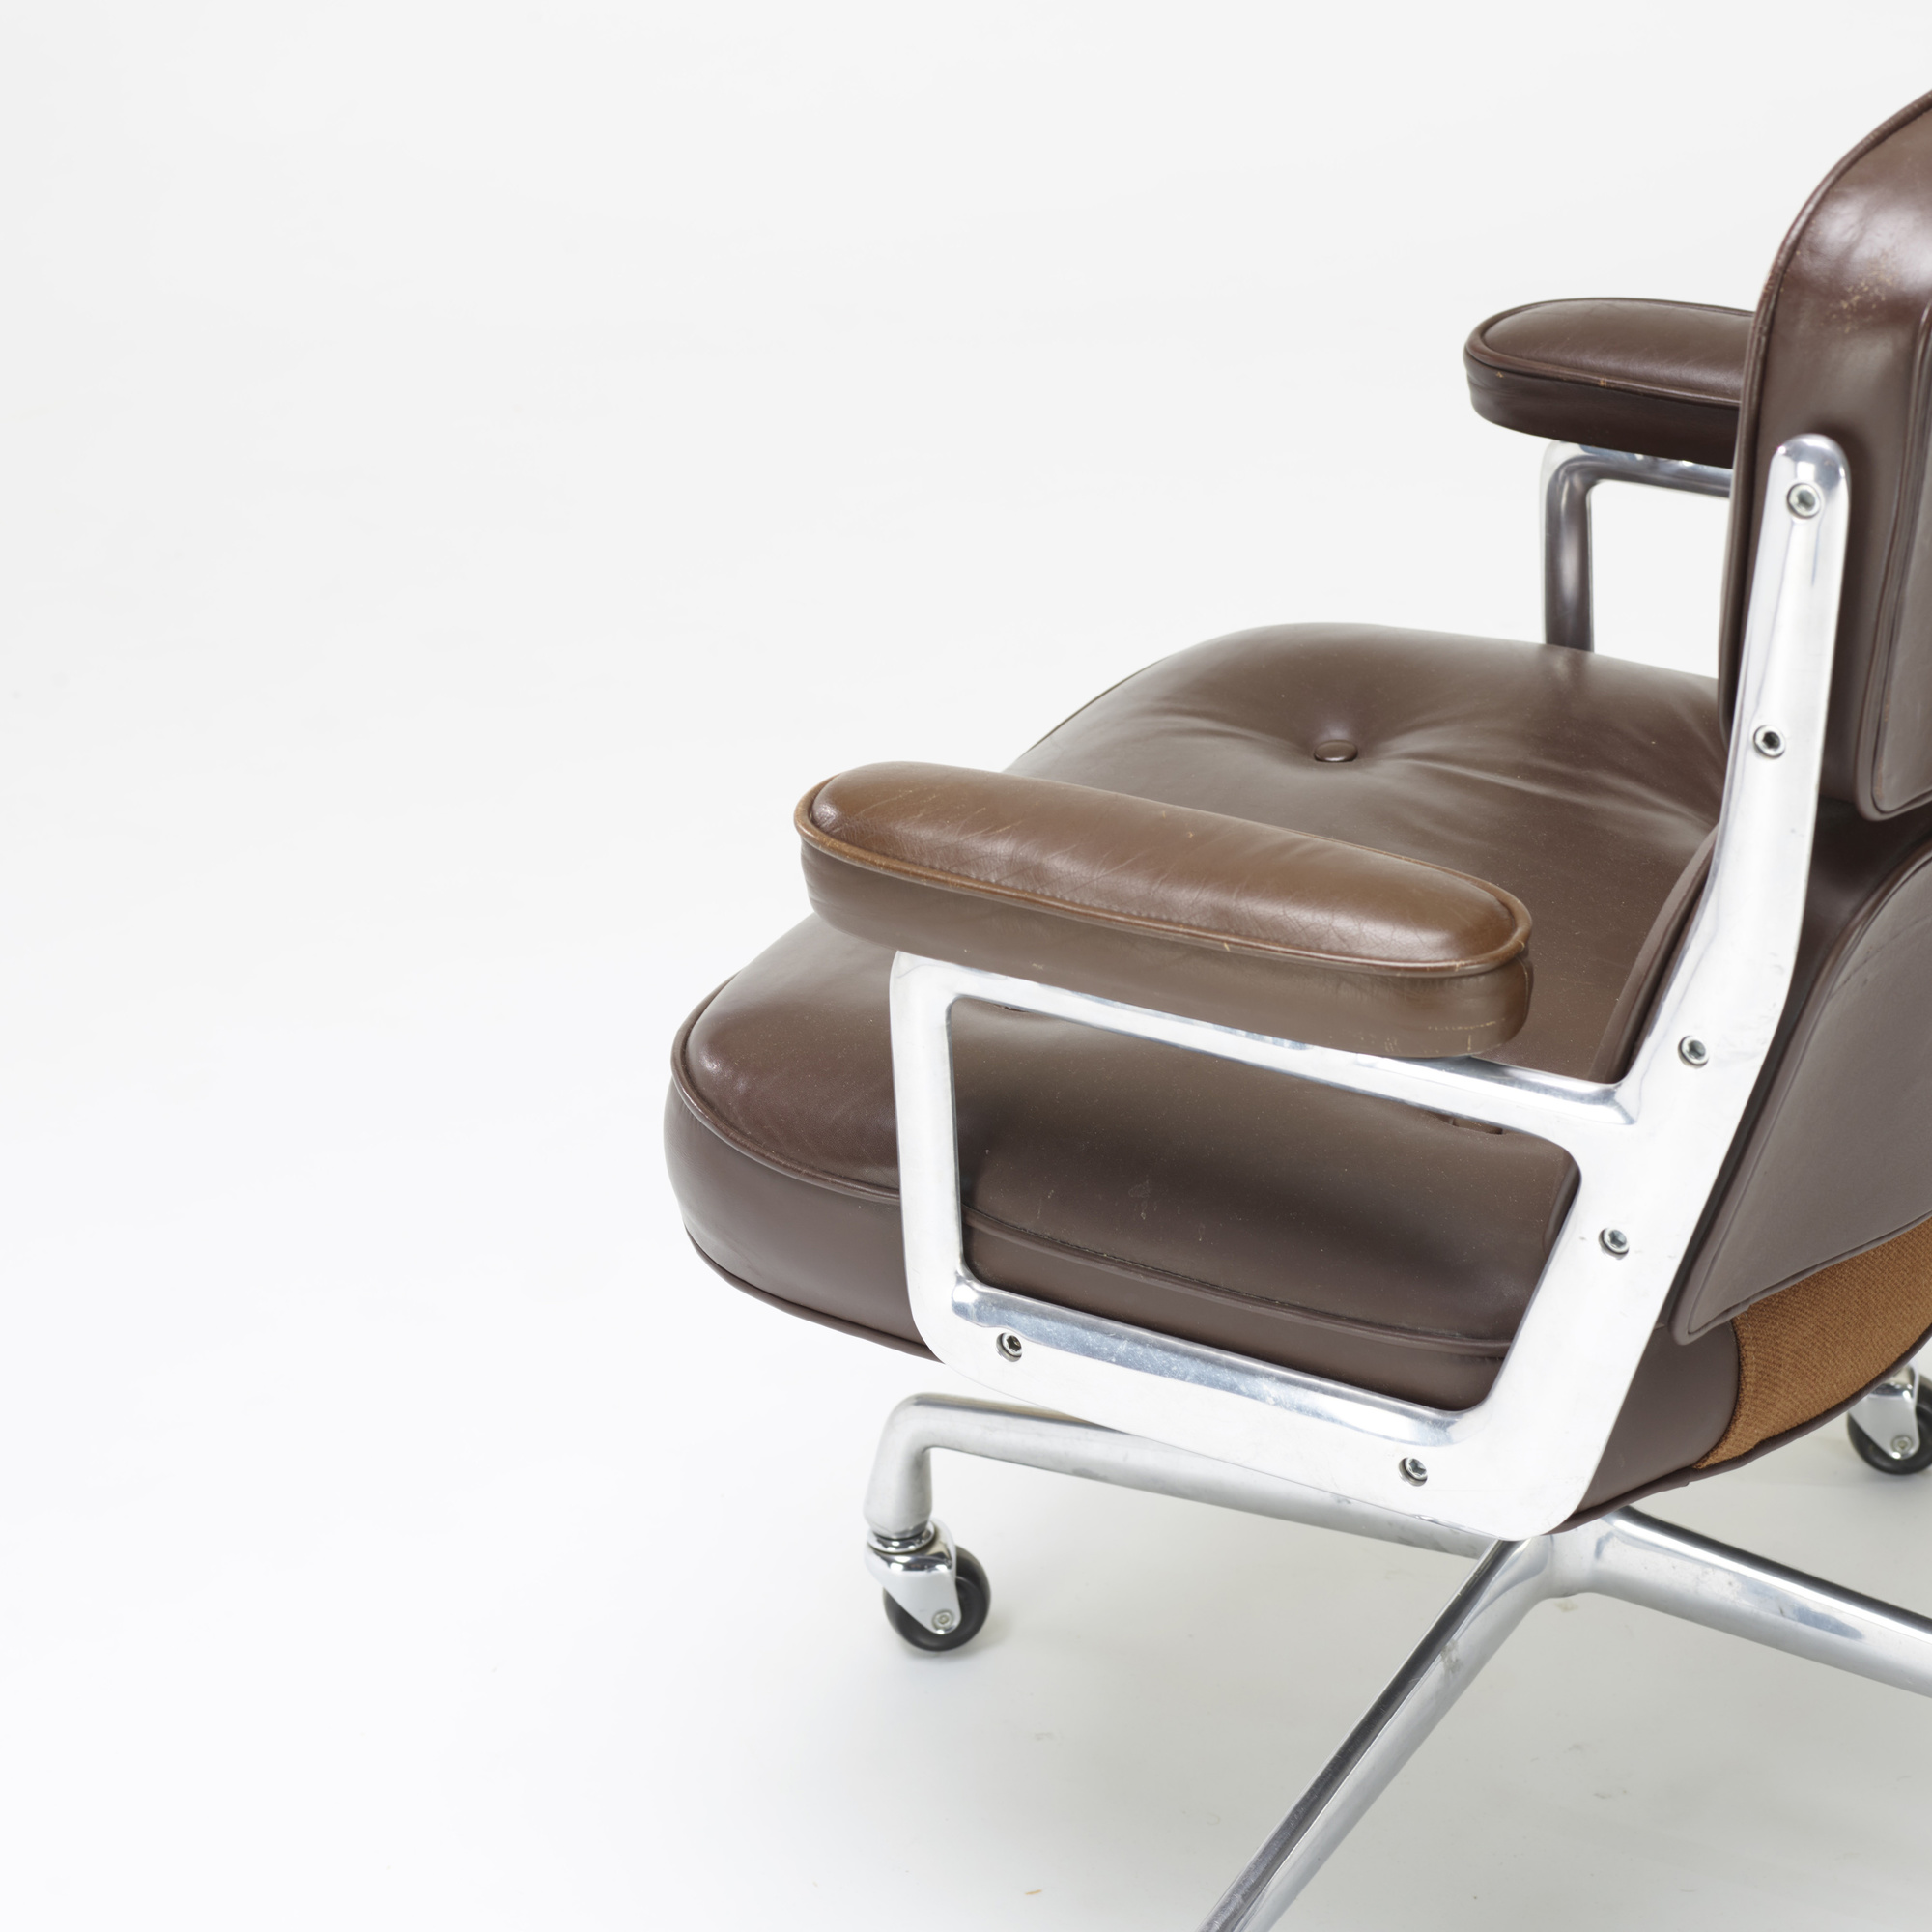 258: Charles and Ray Eames / Time Life armchair (3 of 3)